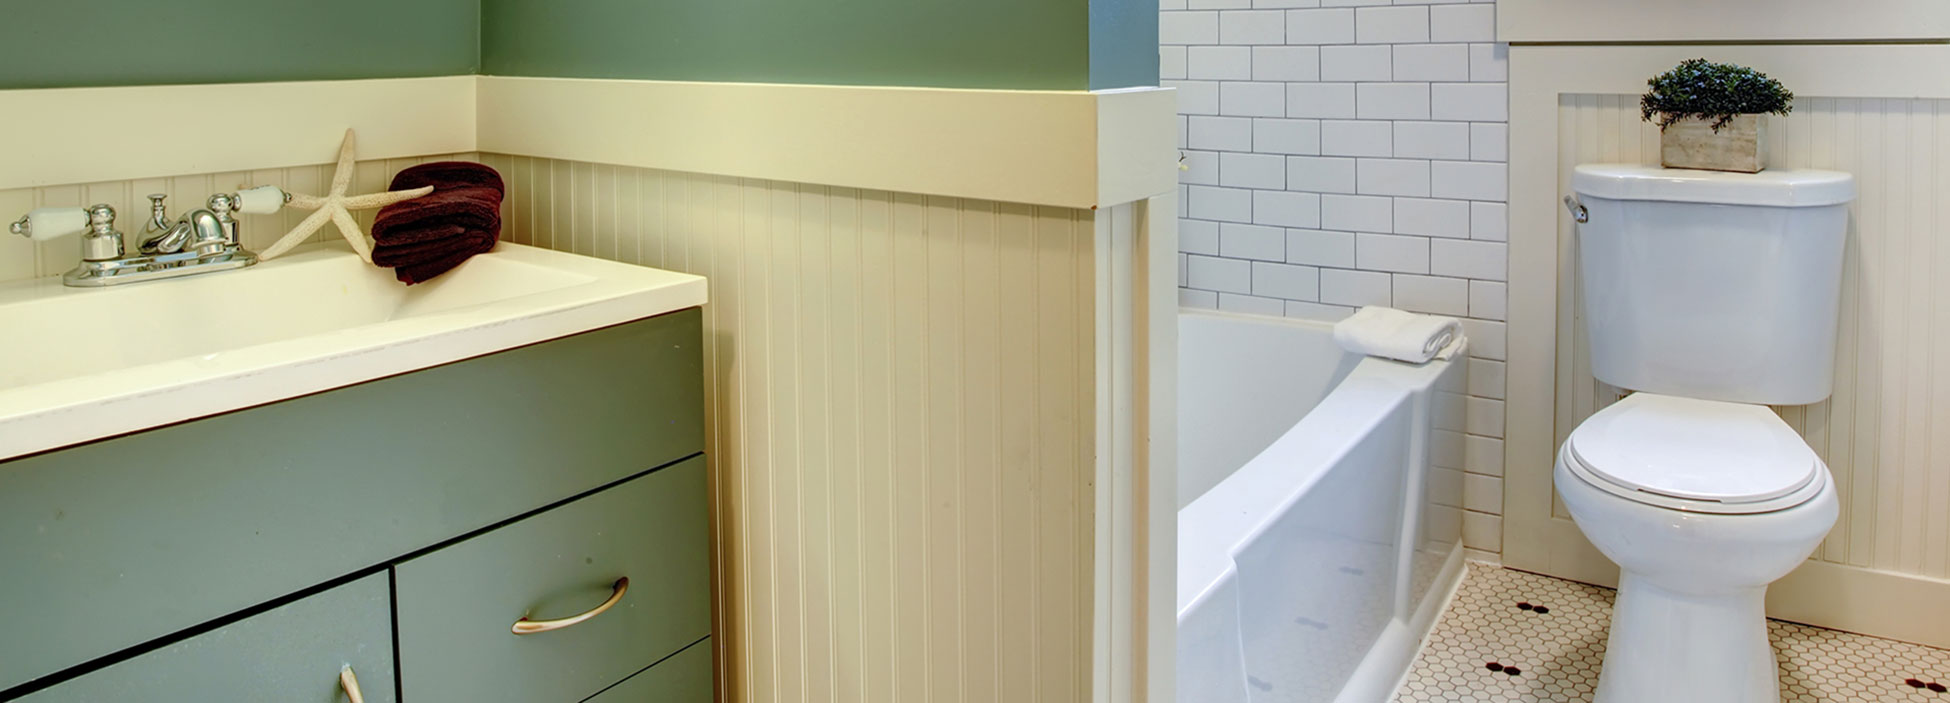 Bathroom fixtures can qualify for LOTT rebates and incentives